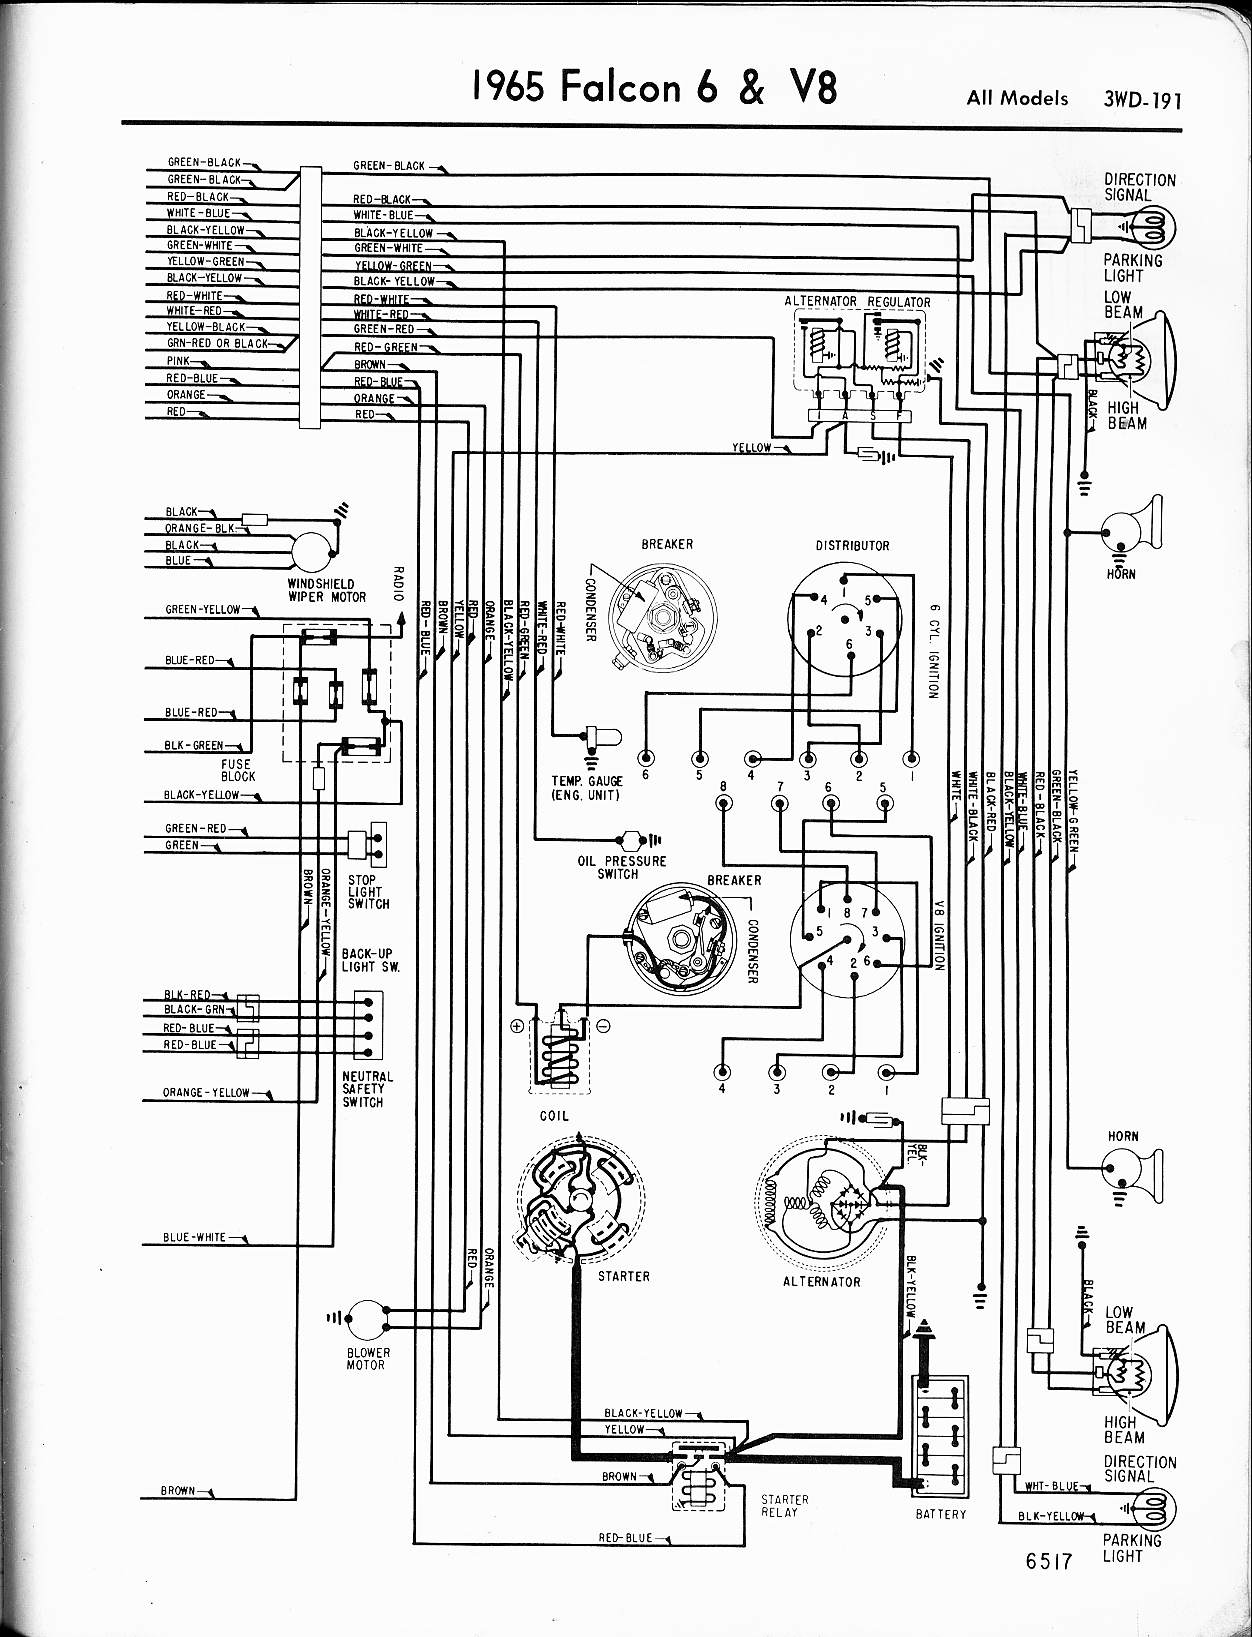 MWire5765 191 engine wire diagram for 65 falcon 65 falcon hot rod \u2022 wiring 1965 ford mustang wiring diagrams at panicattacktreatment.co